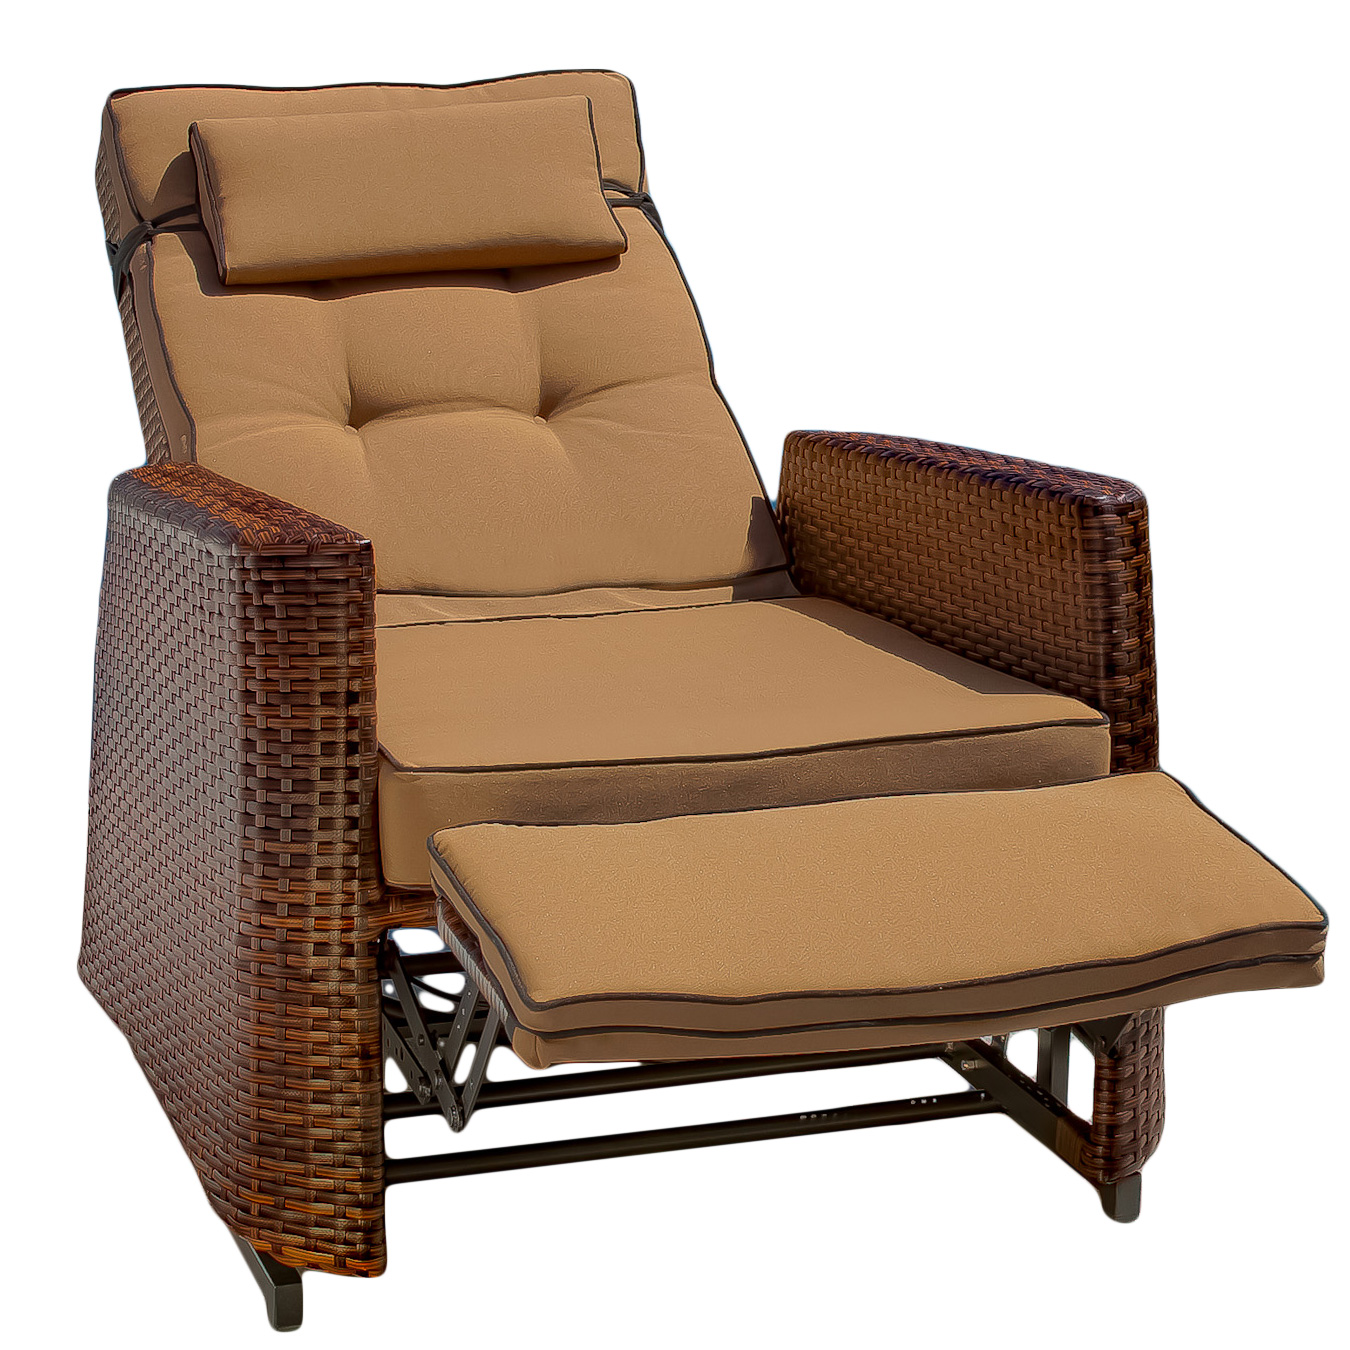 wicker recliner chair fishing game set outdoor recliners walmart com product image brown rocking with cushions